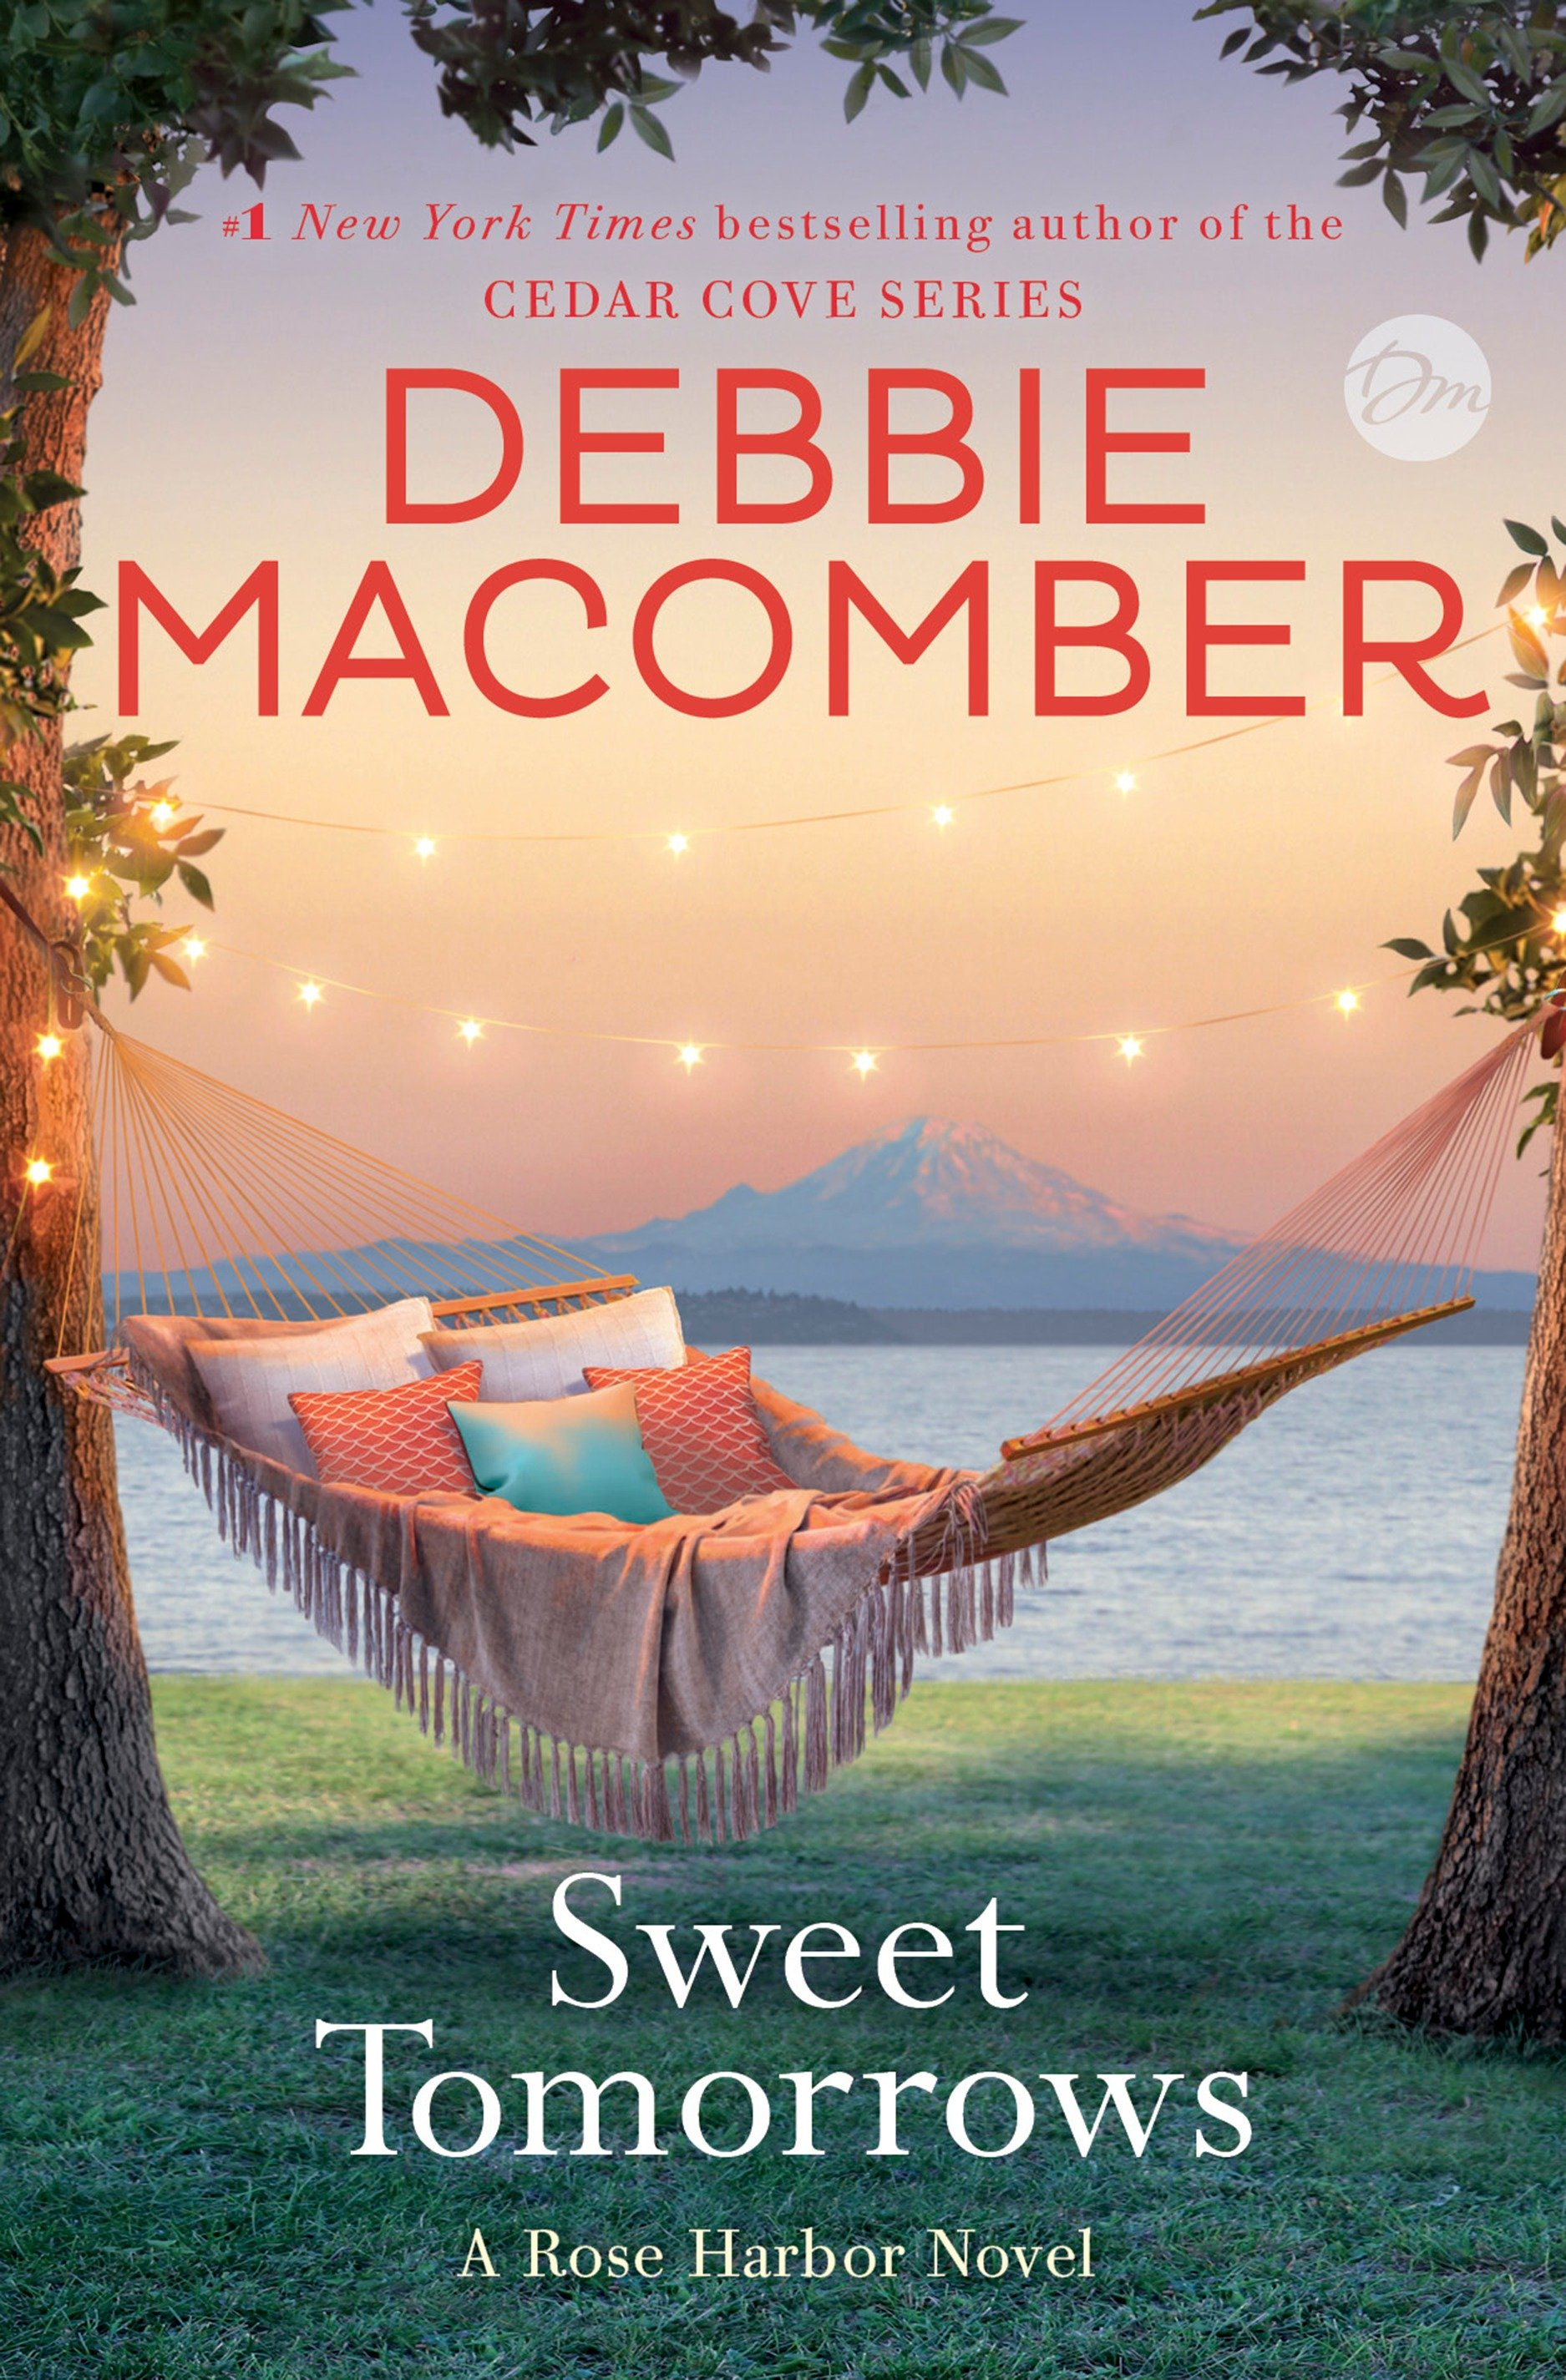 Sweet tomorrows : a Rose Harbor novel